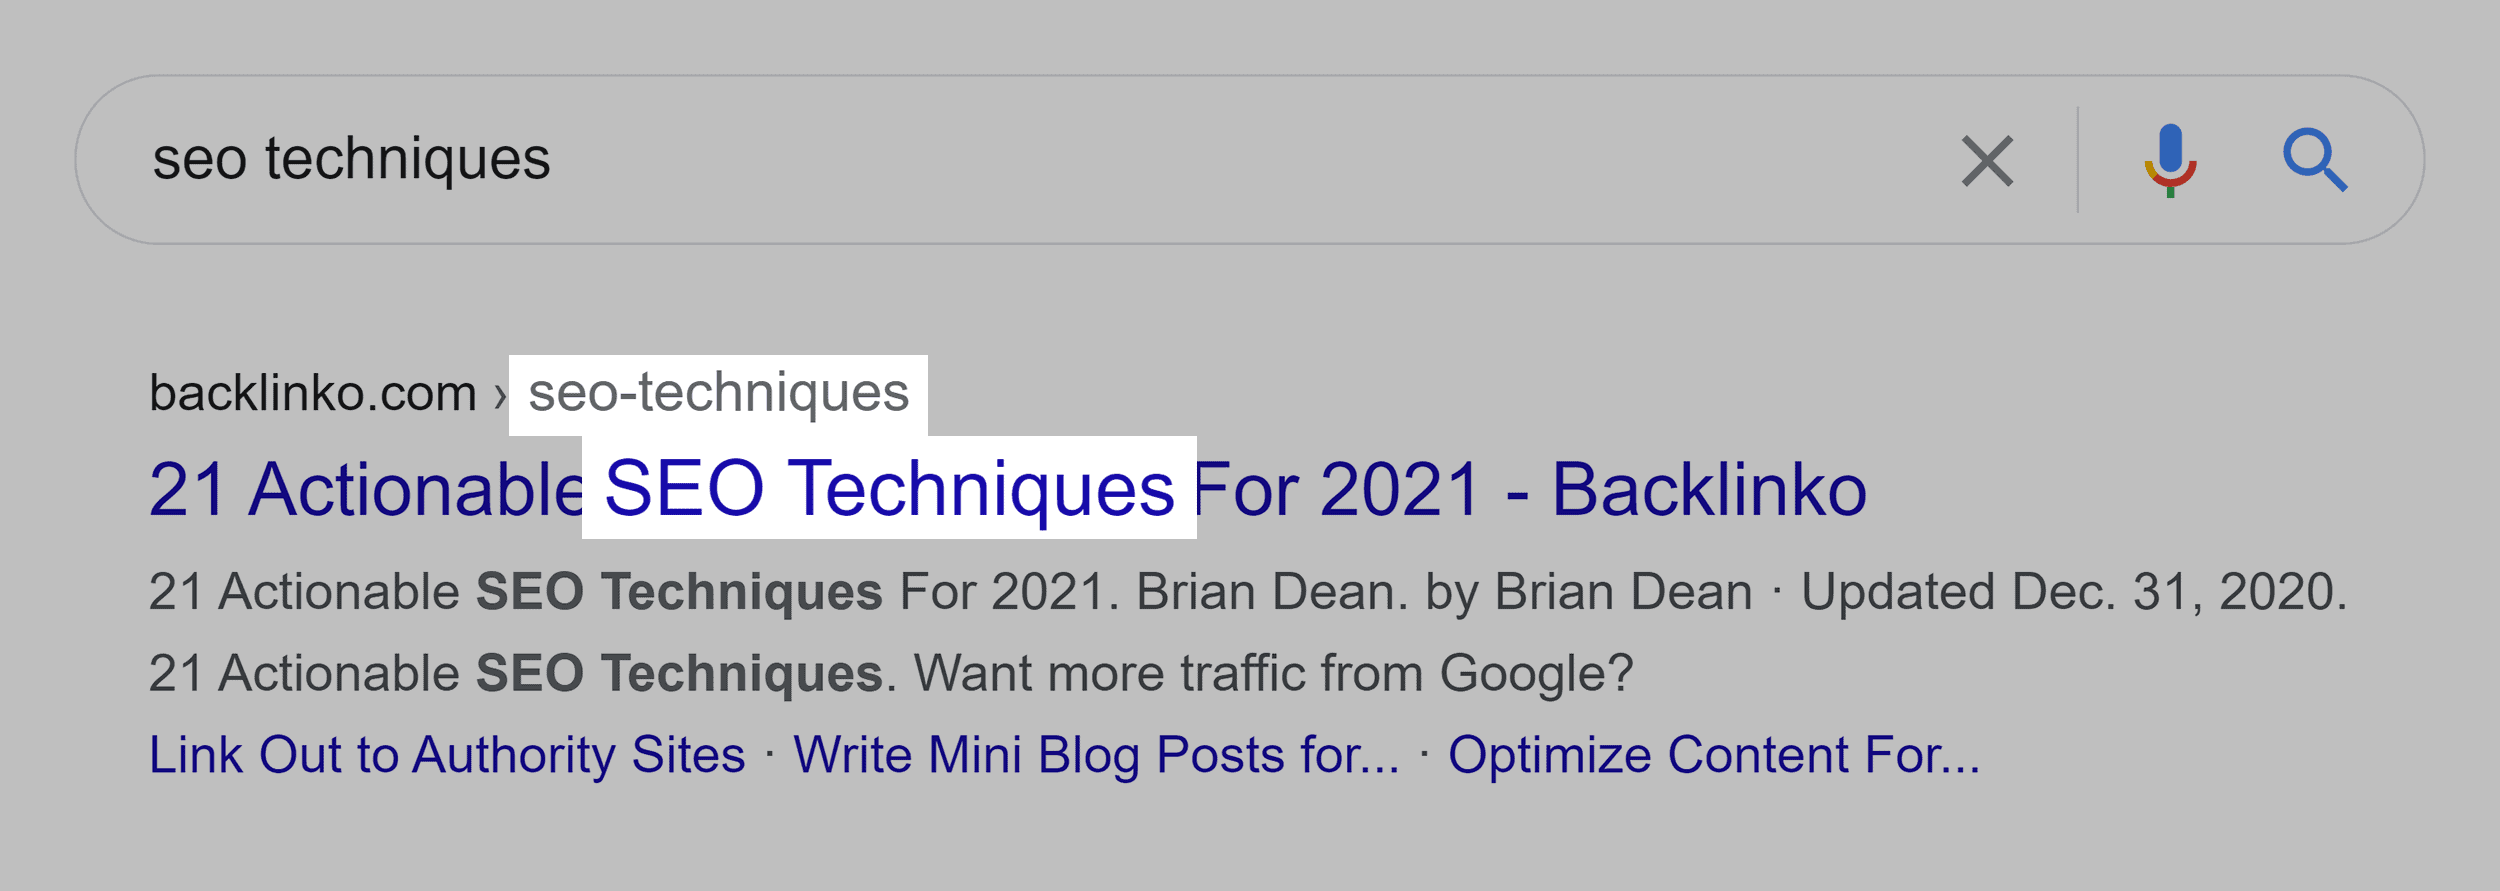 """""""SEO techniques"""" keyword in title and URL"""